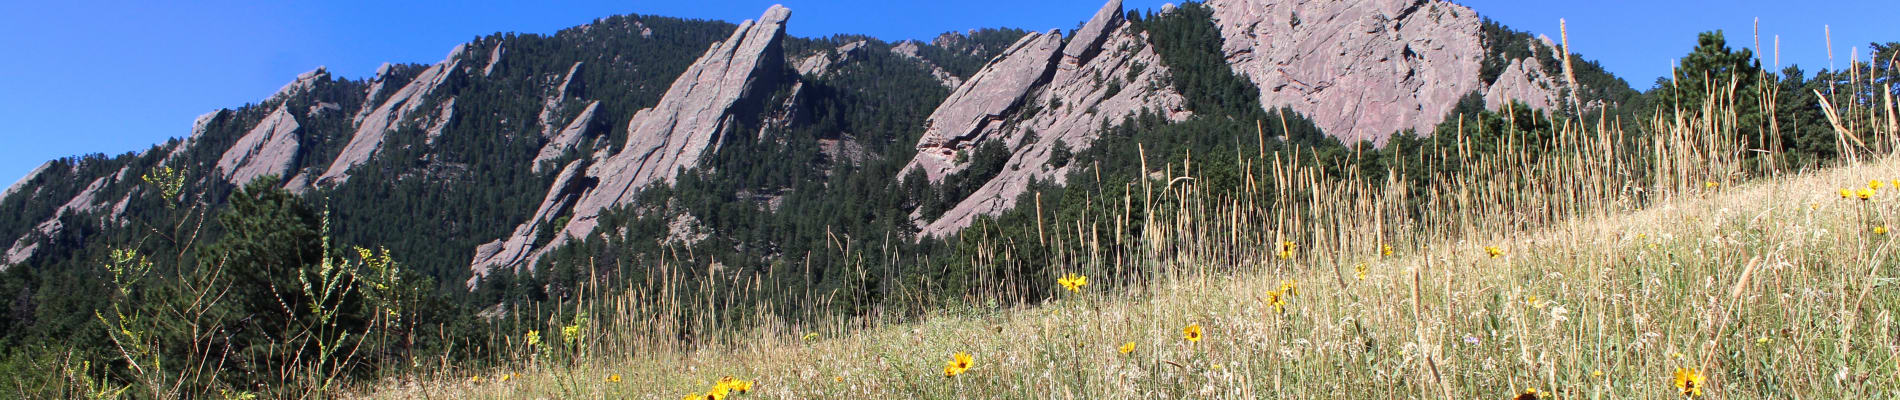 Boulder Colorado mountains